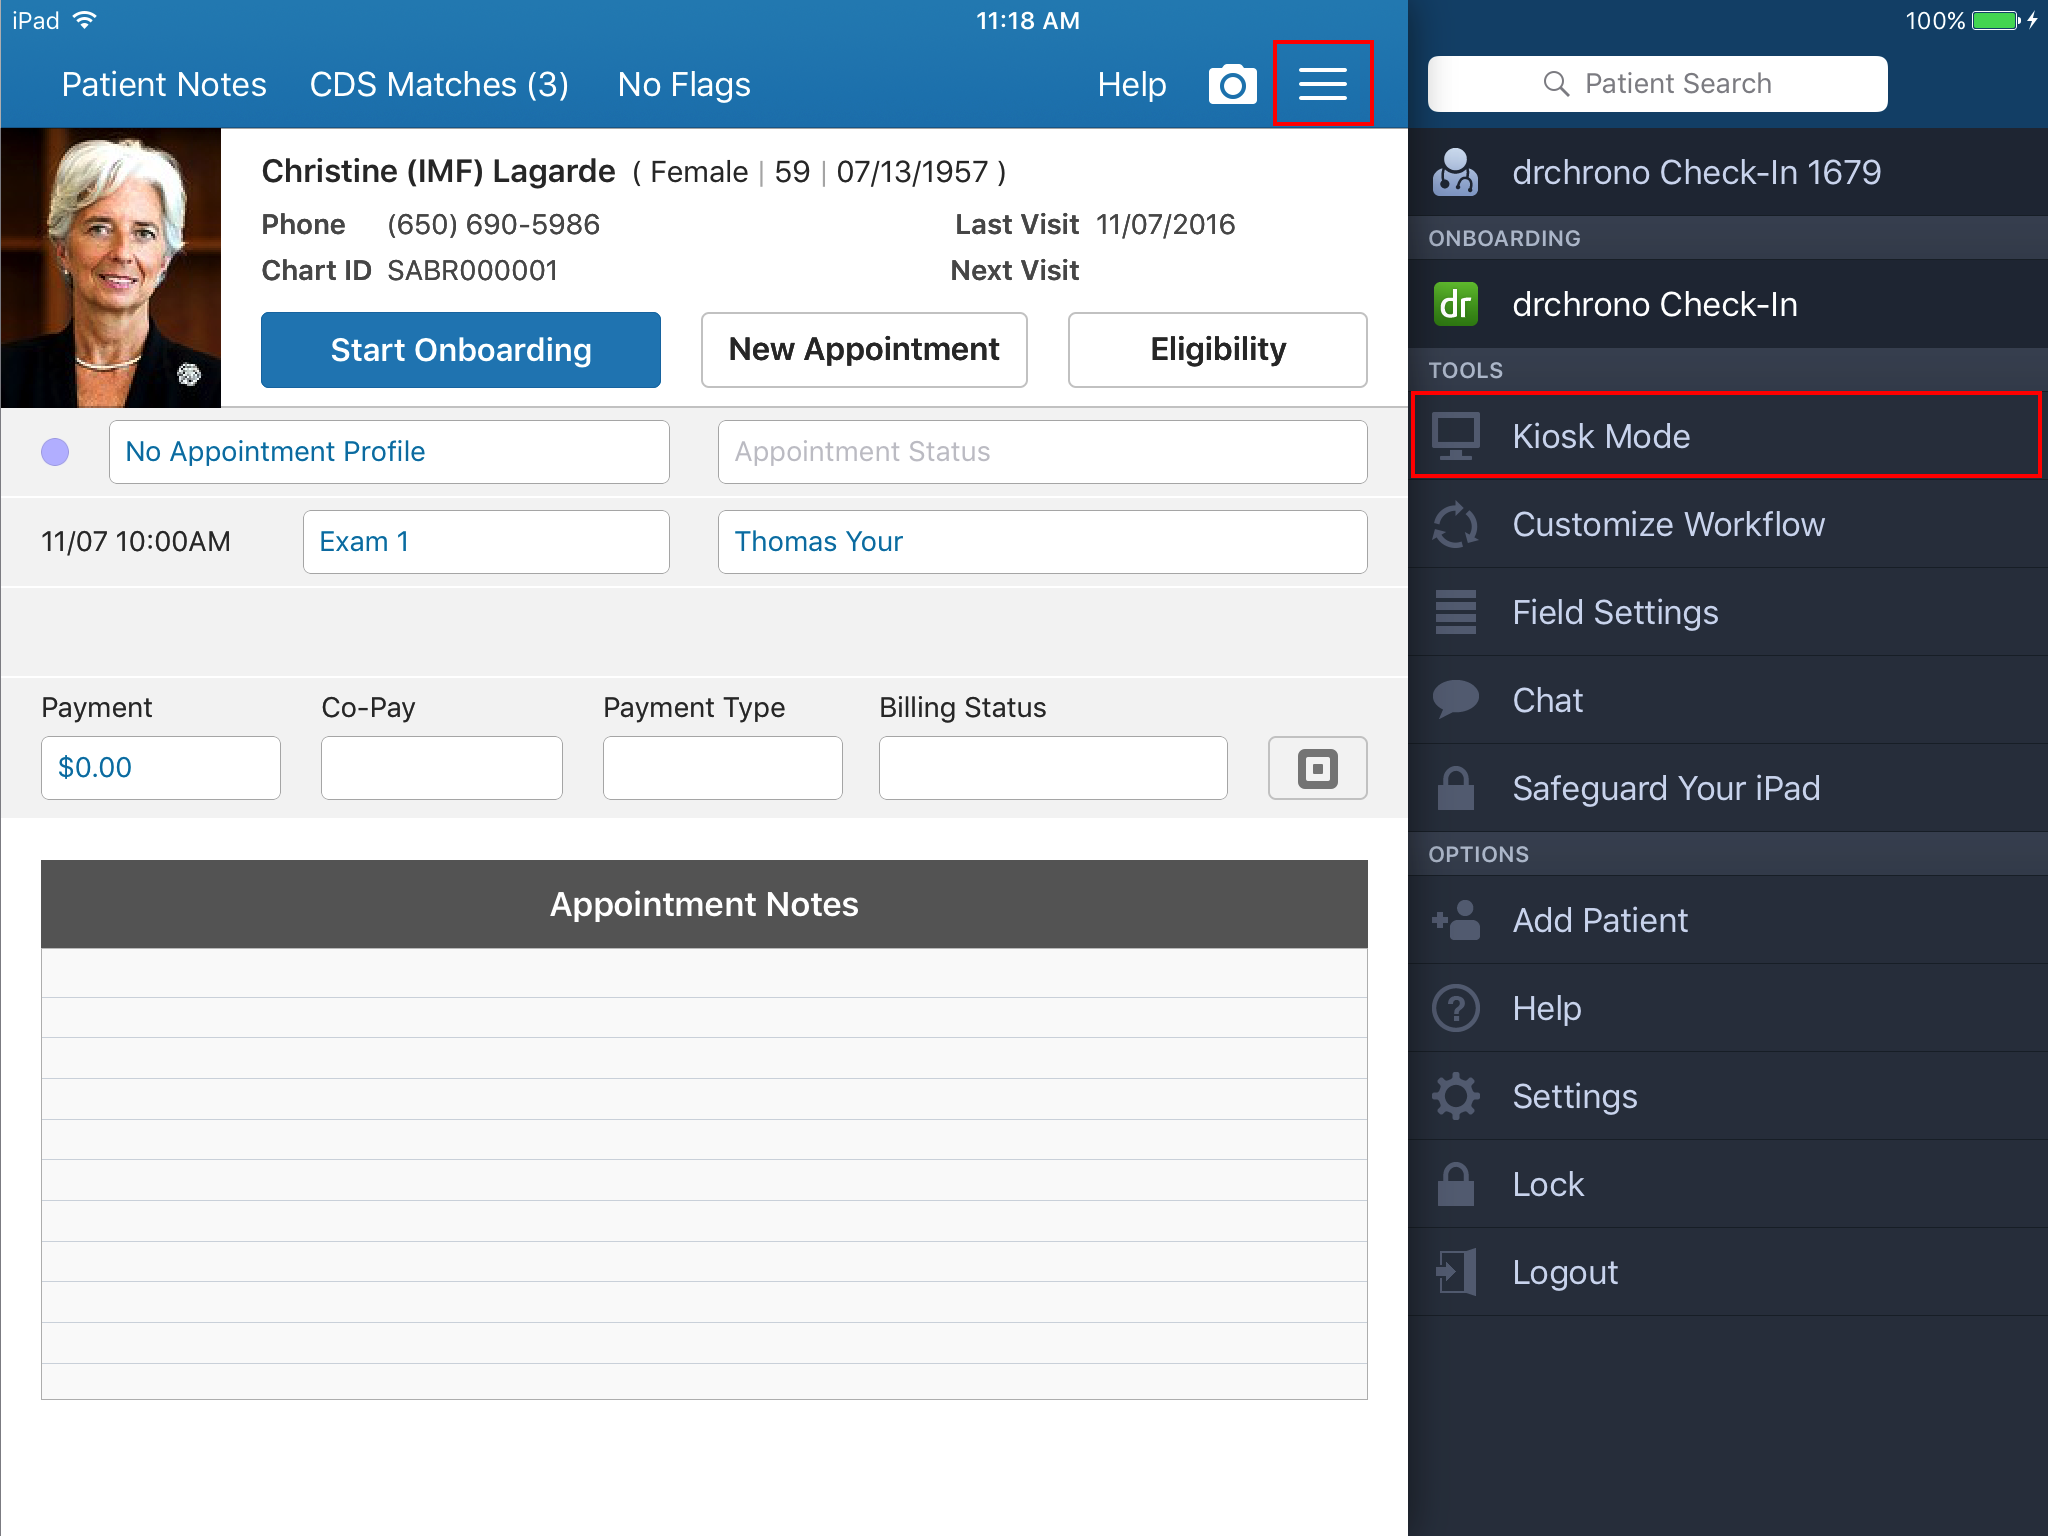 Check-In App: Getting Started with Kiosk Mode – drchrono